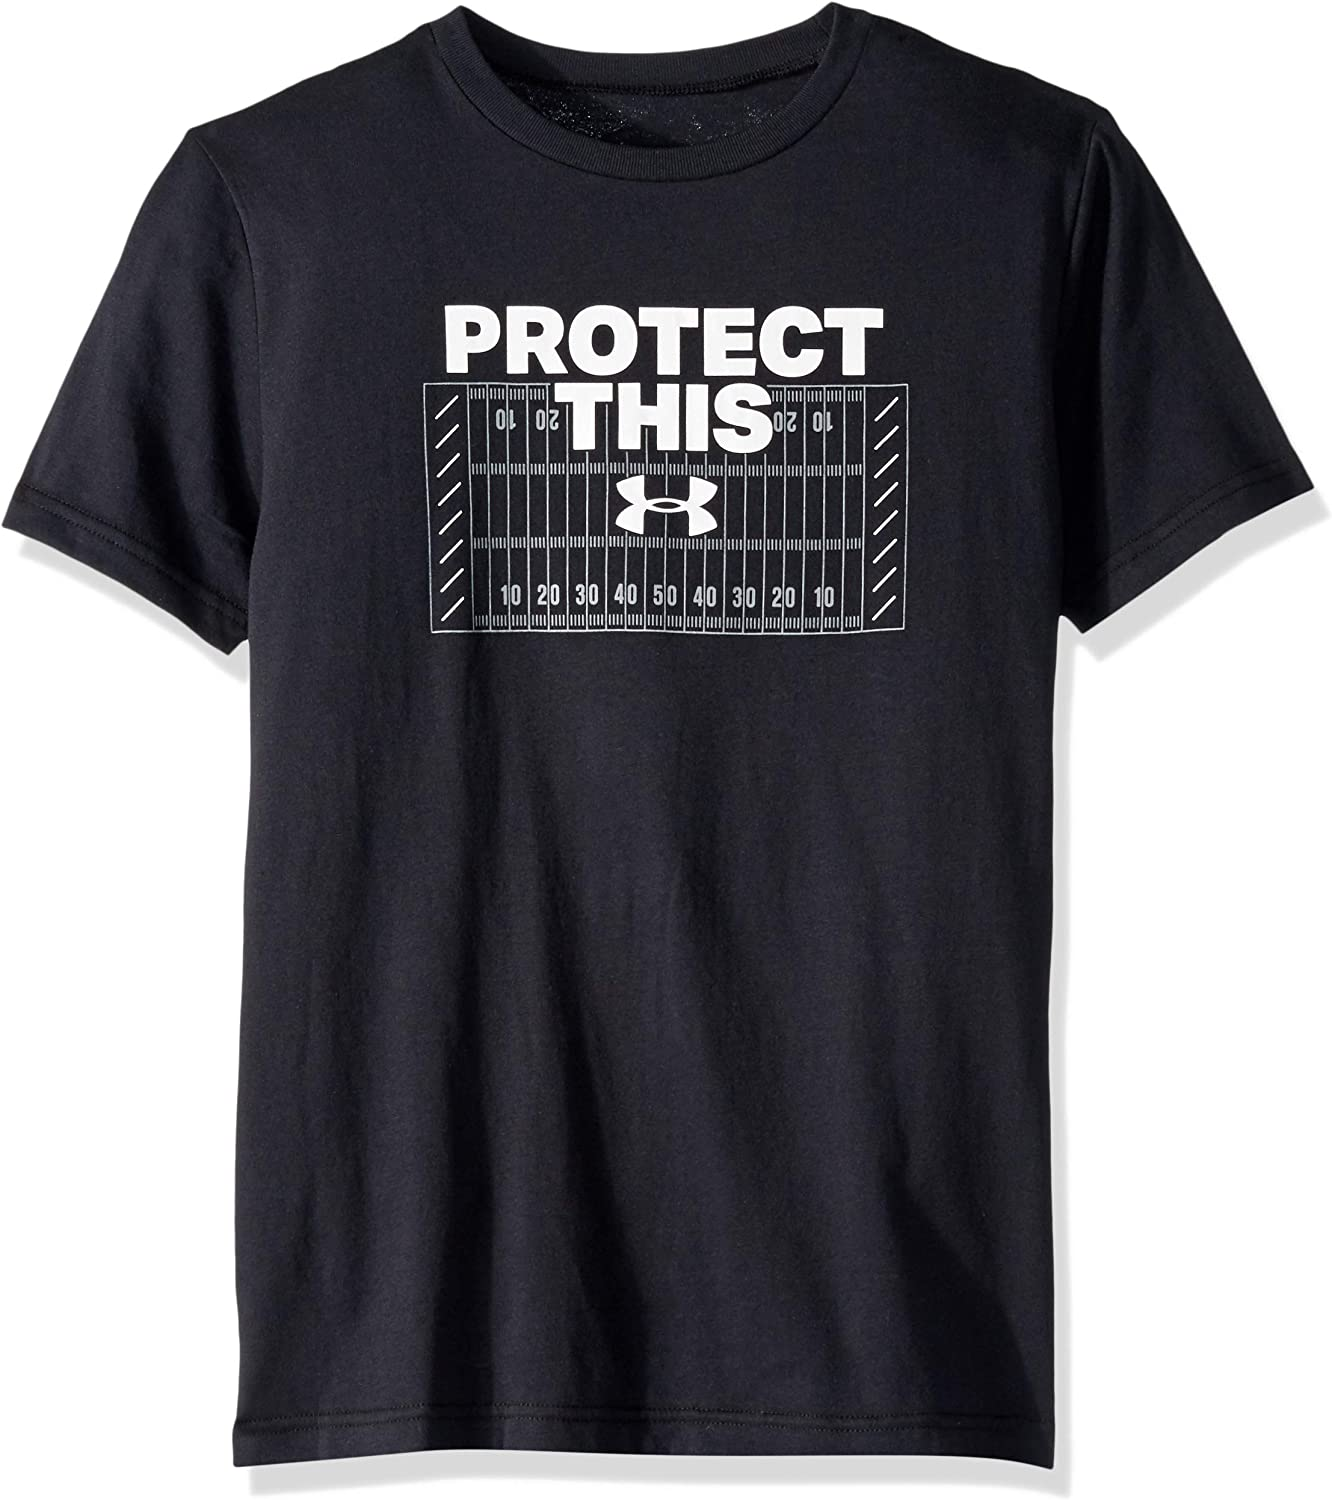 Under Armour Protect This Tシャツ YTH 黒 (001)/白い Youth Small